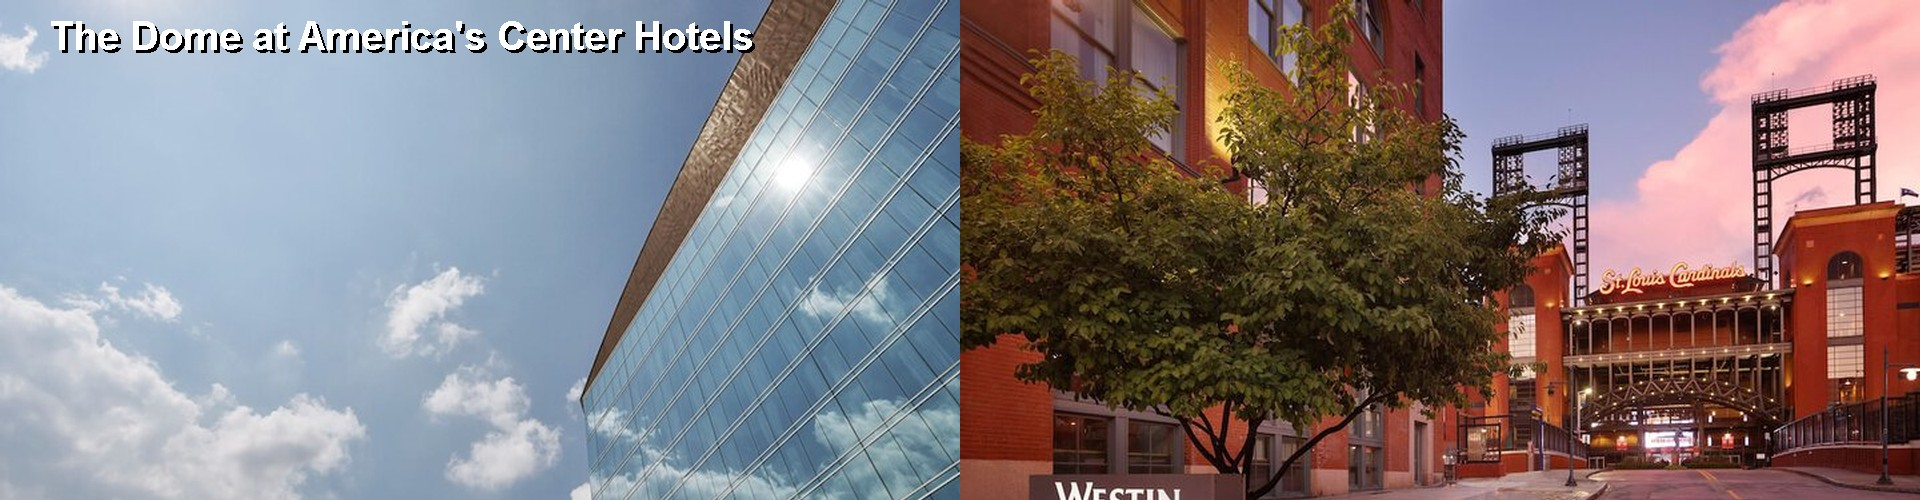 $45+ Hotels Near Edward Jones Dome Saint Louis Rams in St. Louis MO